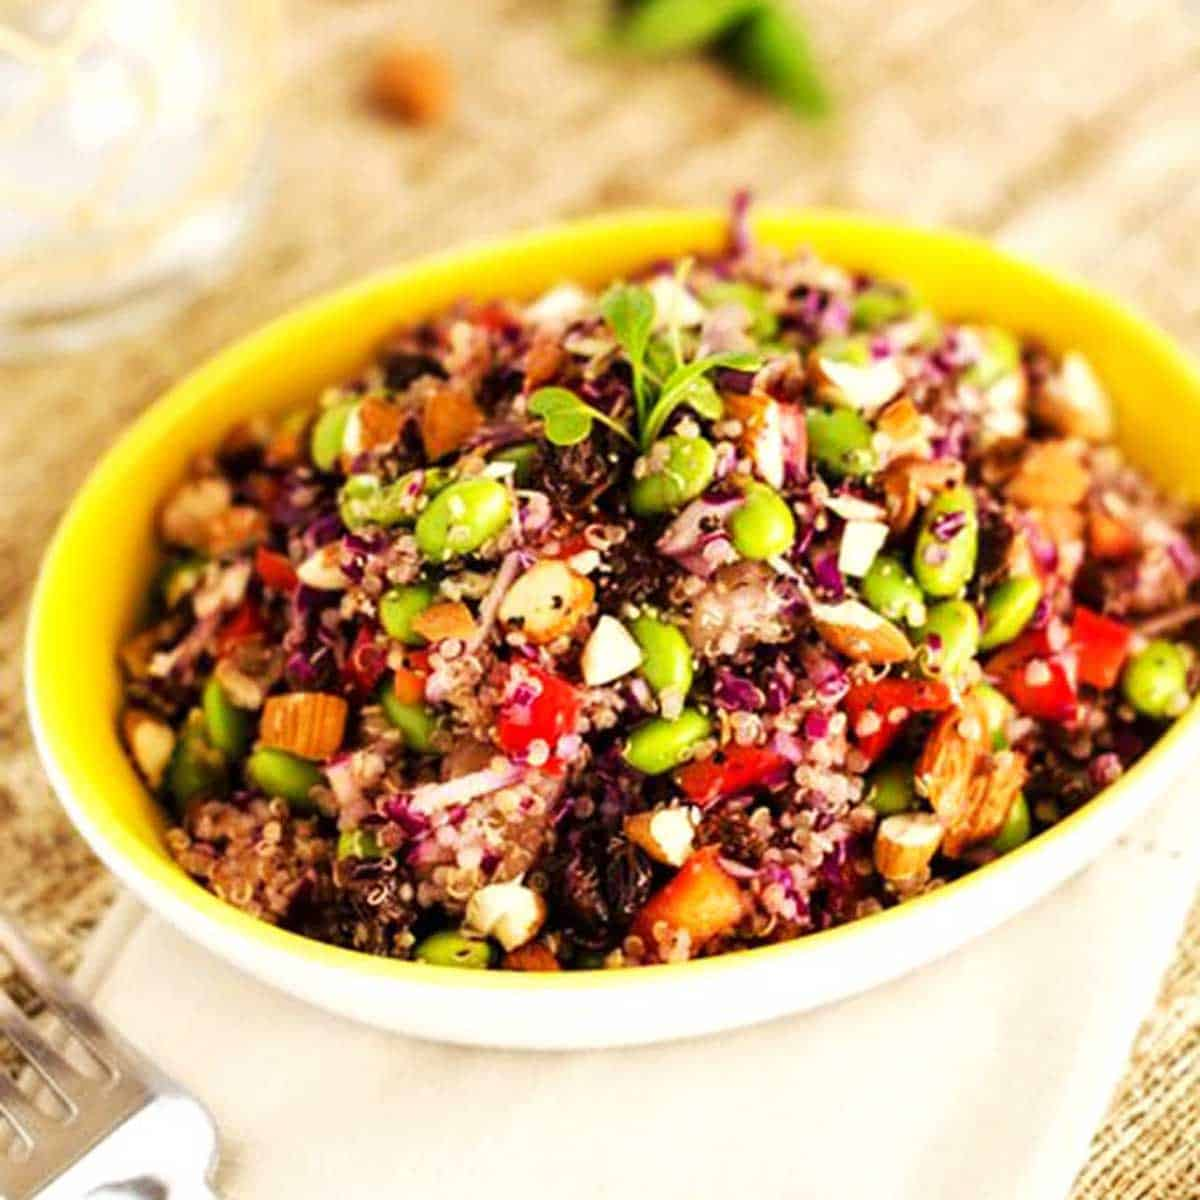 Photo of an Edamame Quinoa Salad in a yellow dish.